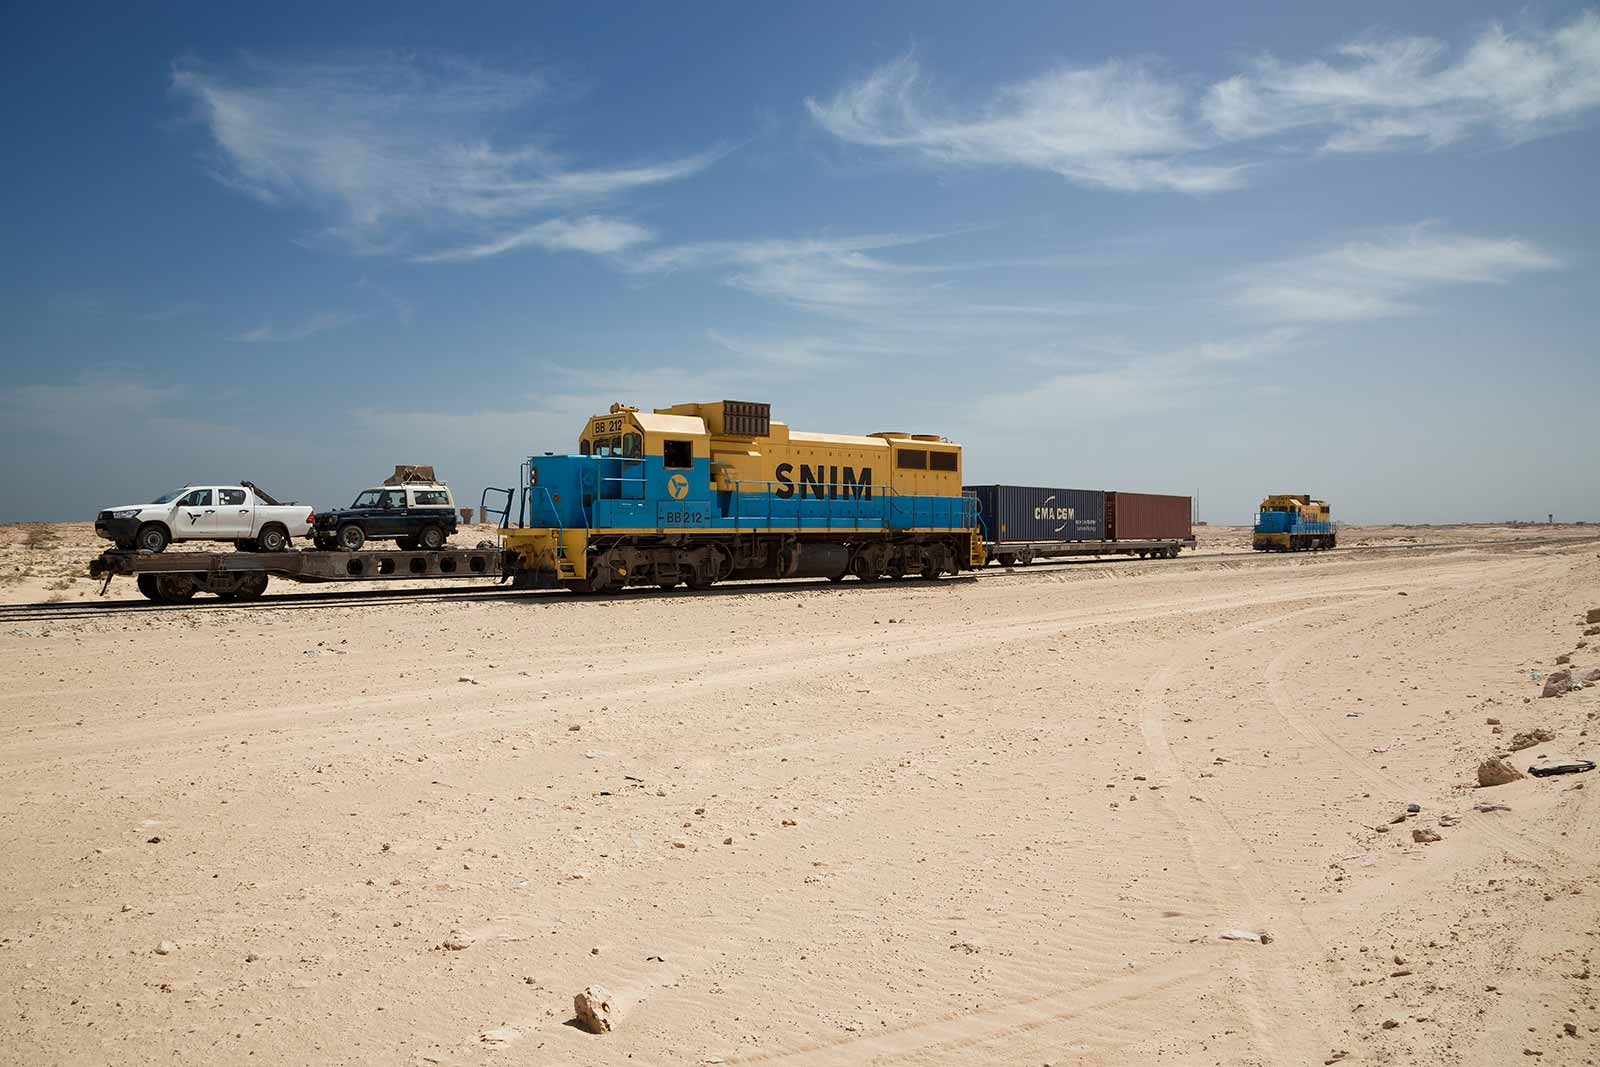 The Iron Ore Train fills its 2.5 km of wagons (which is the second longest on earth) with the iron ore and then heads back to the coastal city of Nouadhibou.